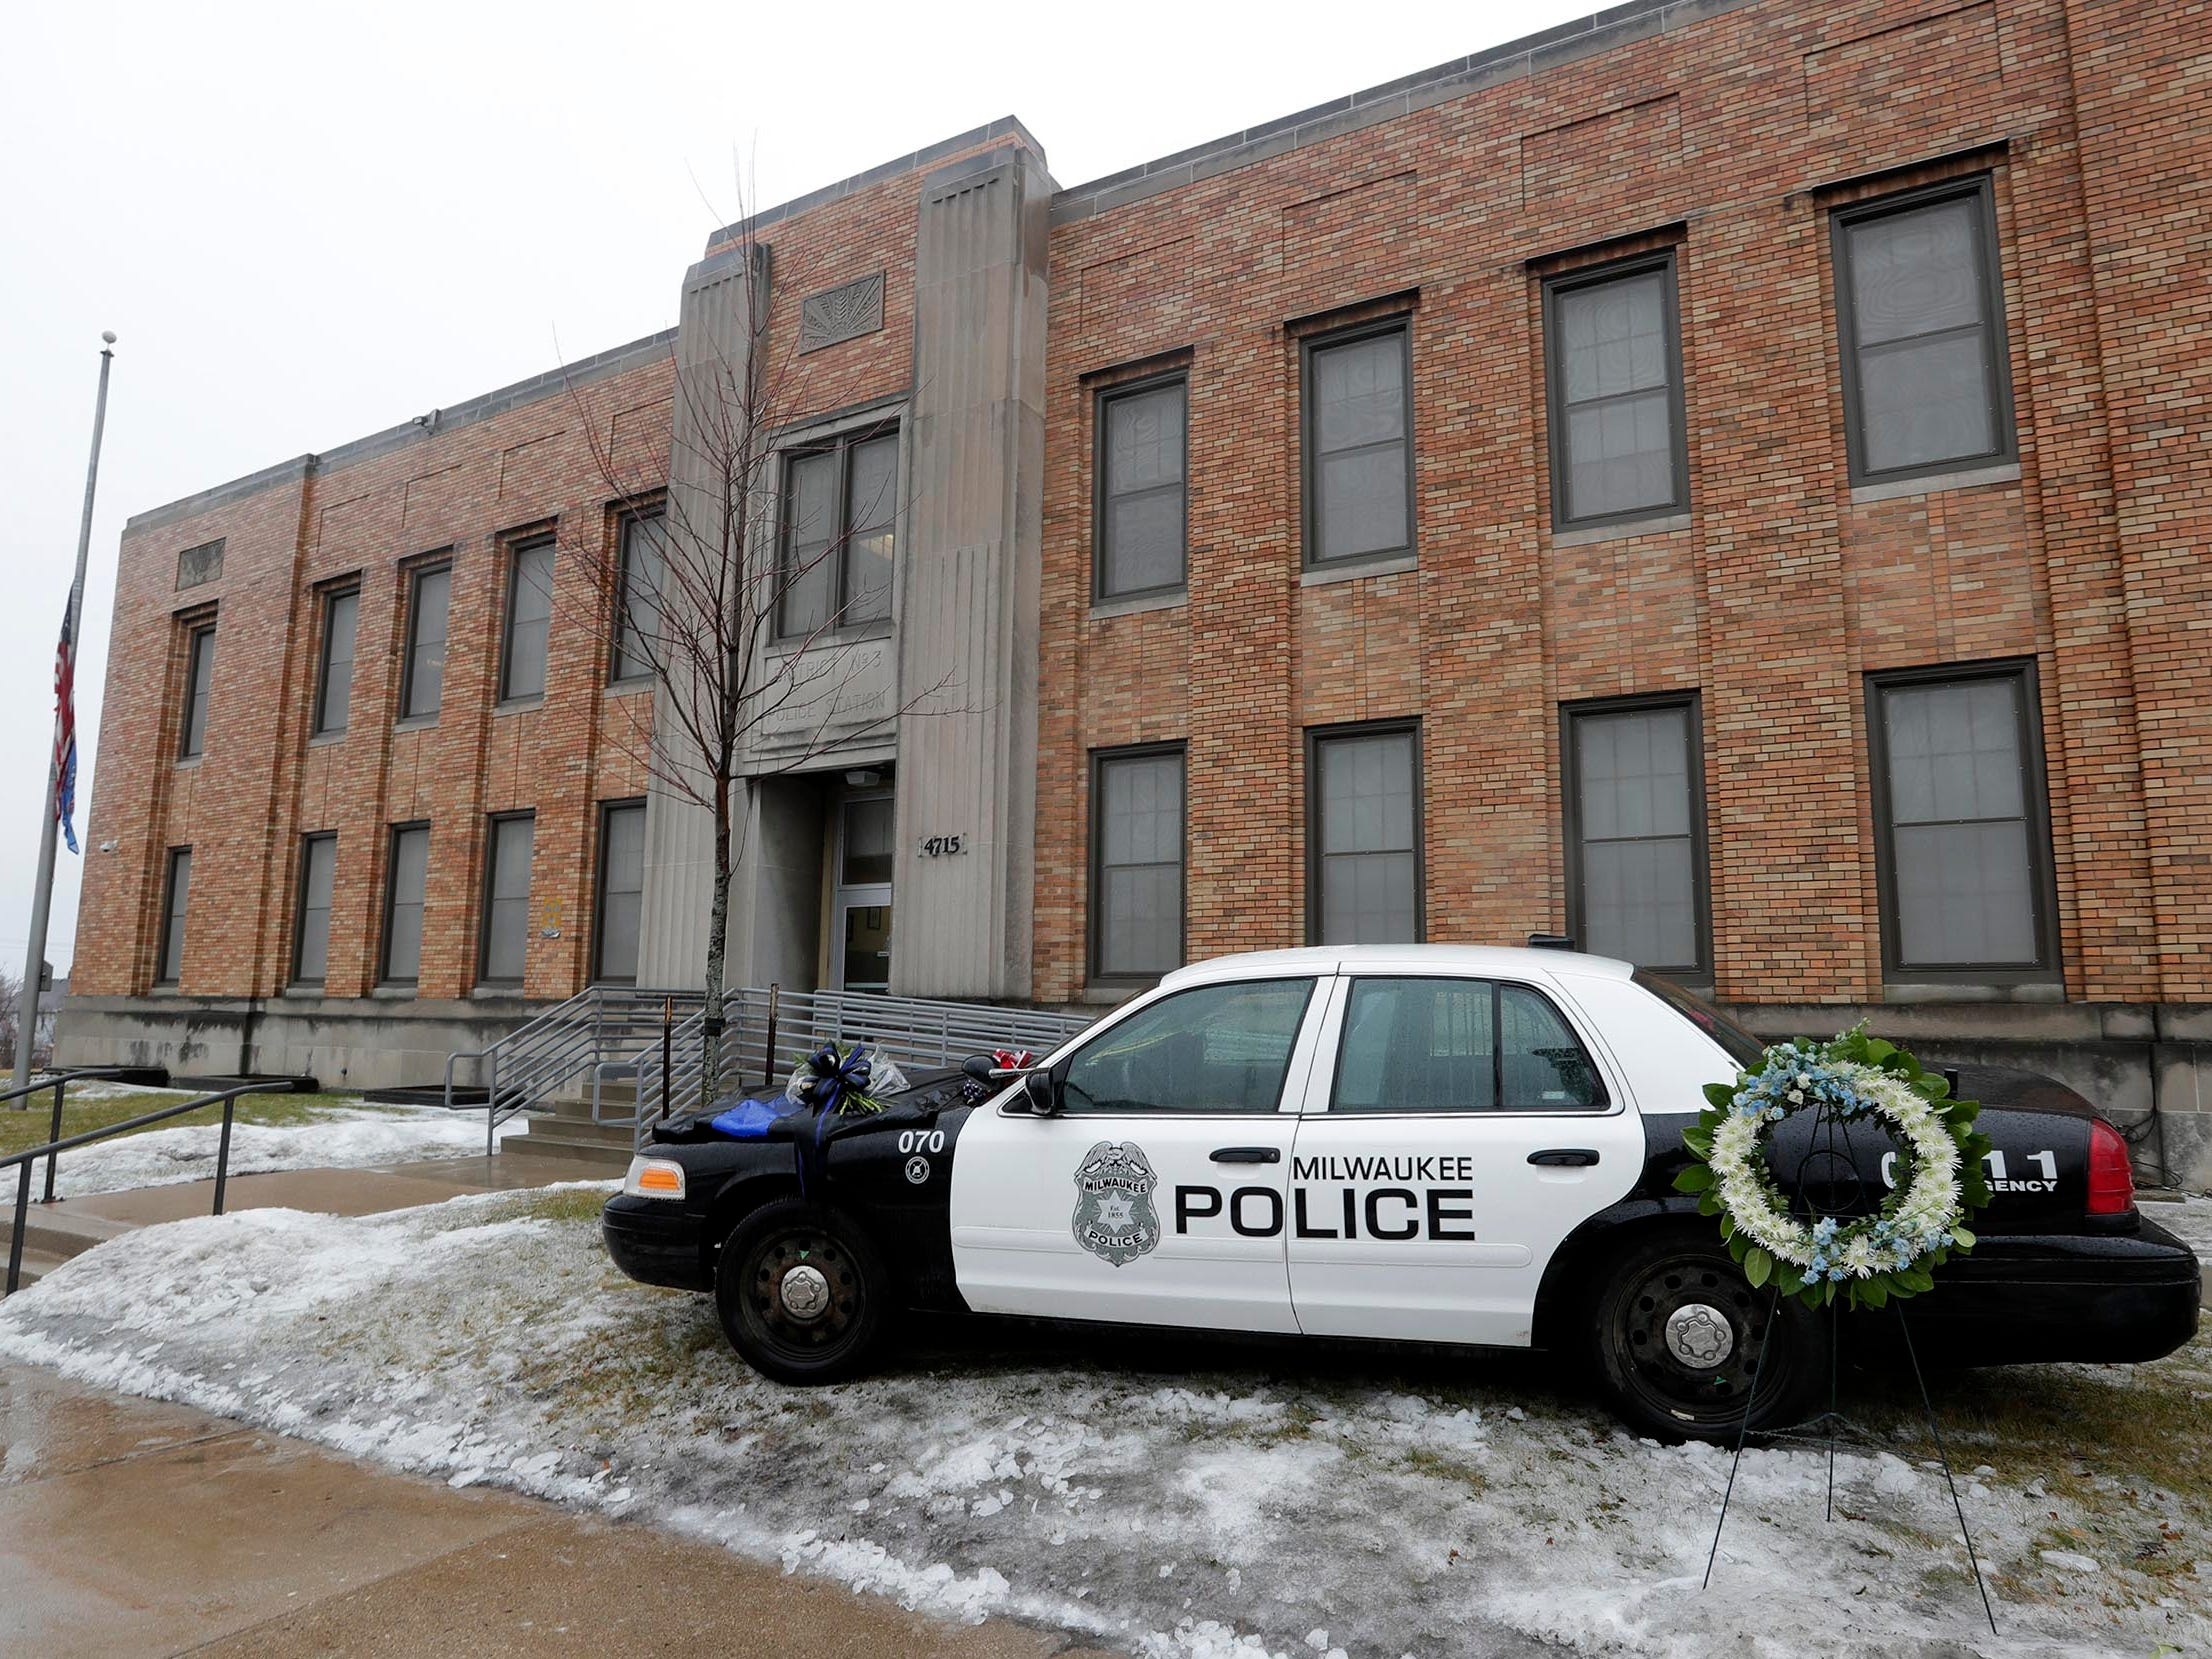 The Milwaukee Police Department building at 4715 W. Vliet St. has a memorial with a bouquet of flowers and other items to honor Officer  Matthew Rittner, a 17-year department veteran, who was killed Wednesday when a team of officers tried to serve a search warrant related to an investigation of illegal gun and drug sales.